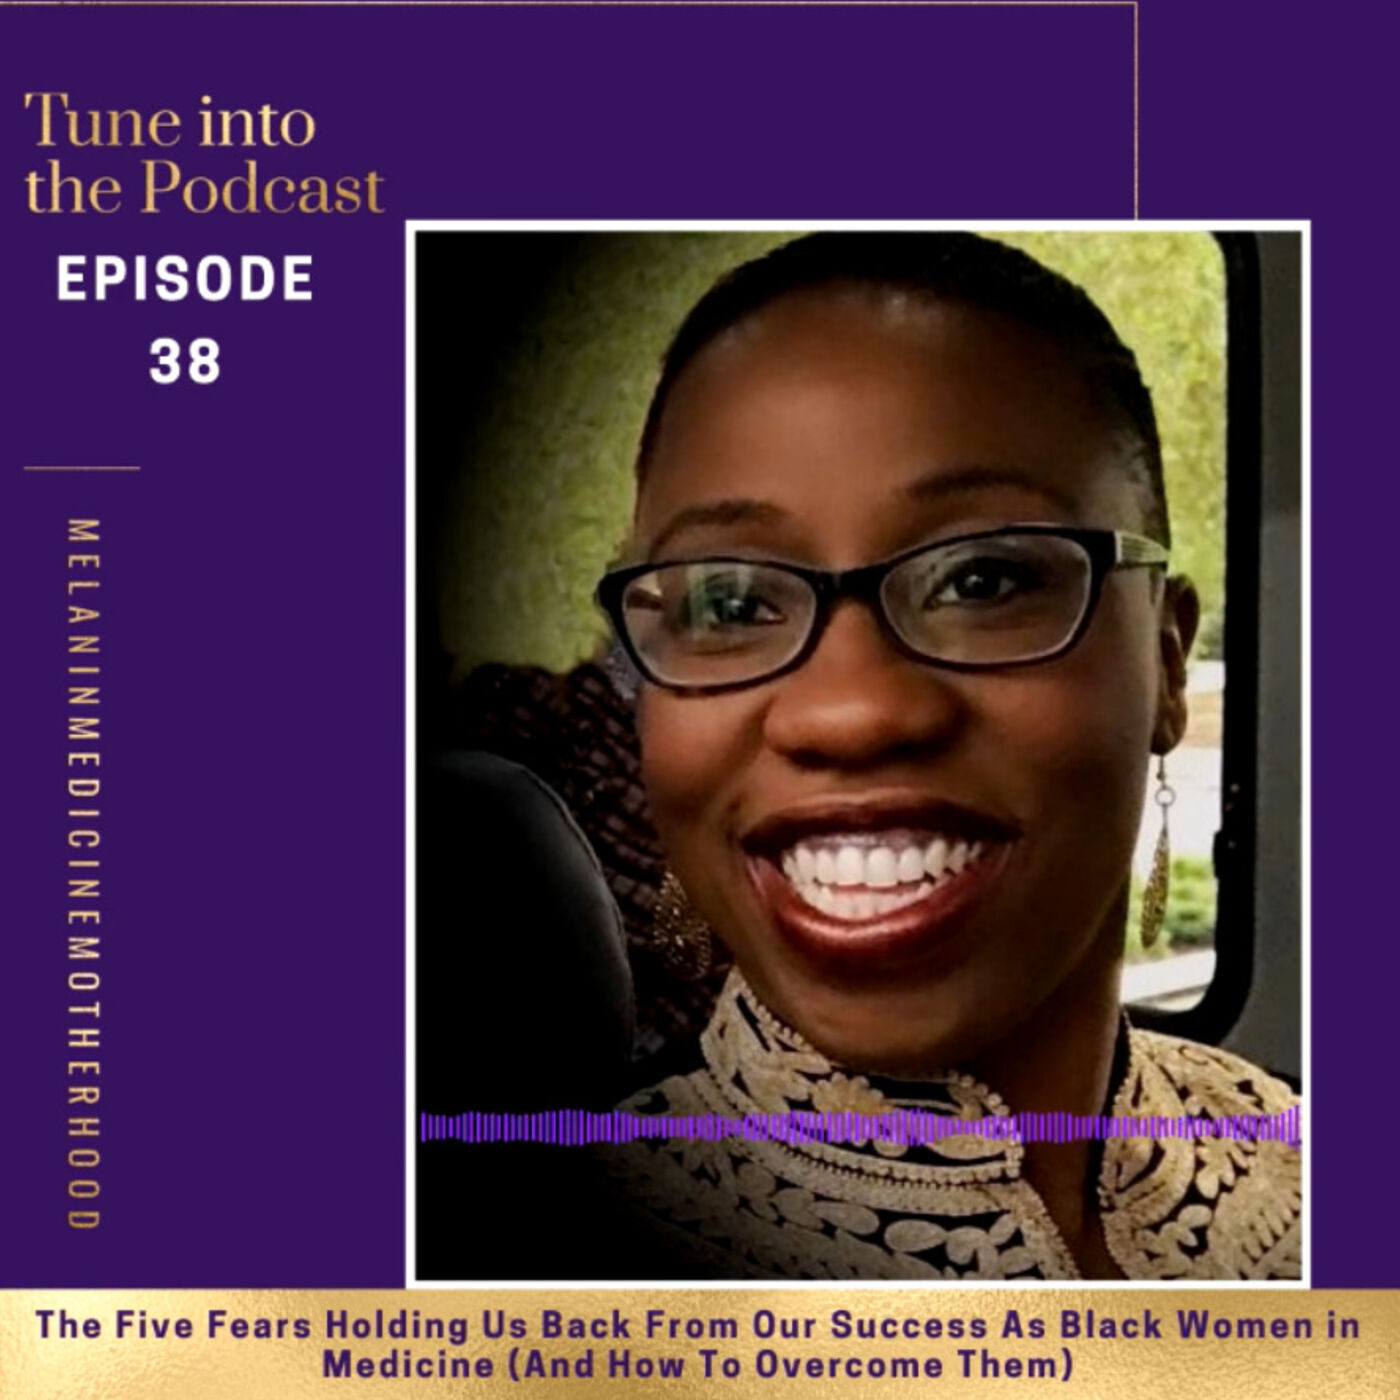 Episode 38: The Five Fears Holding Us Back From Our Success As Black Women in Medicine (And How To Overcome Them)